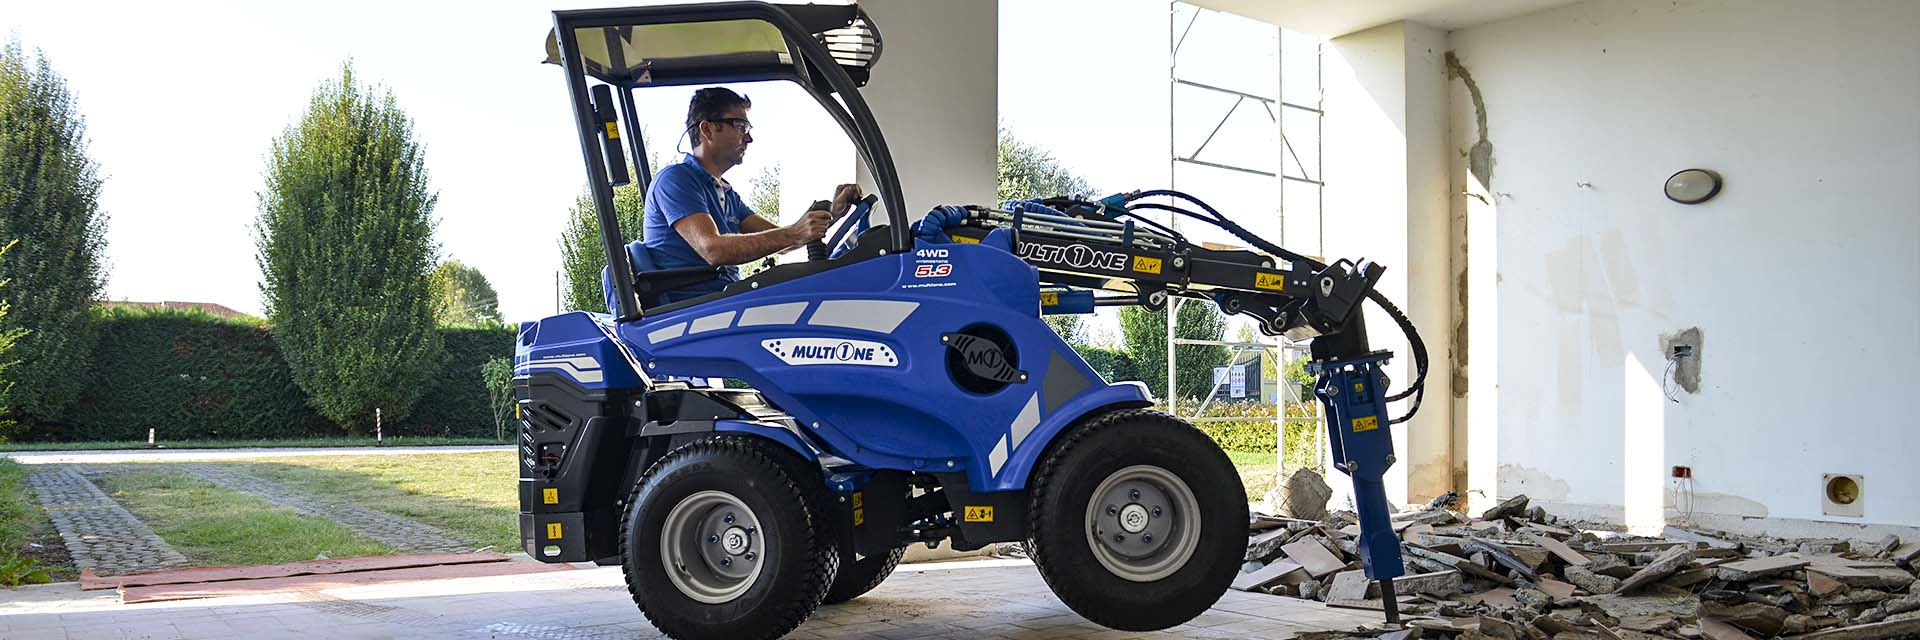 Multifunctional Mini Articulated Loaders Production - Multione